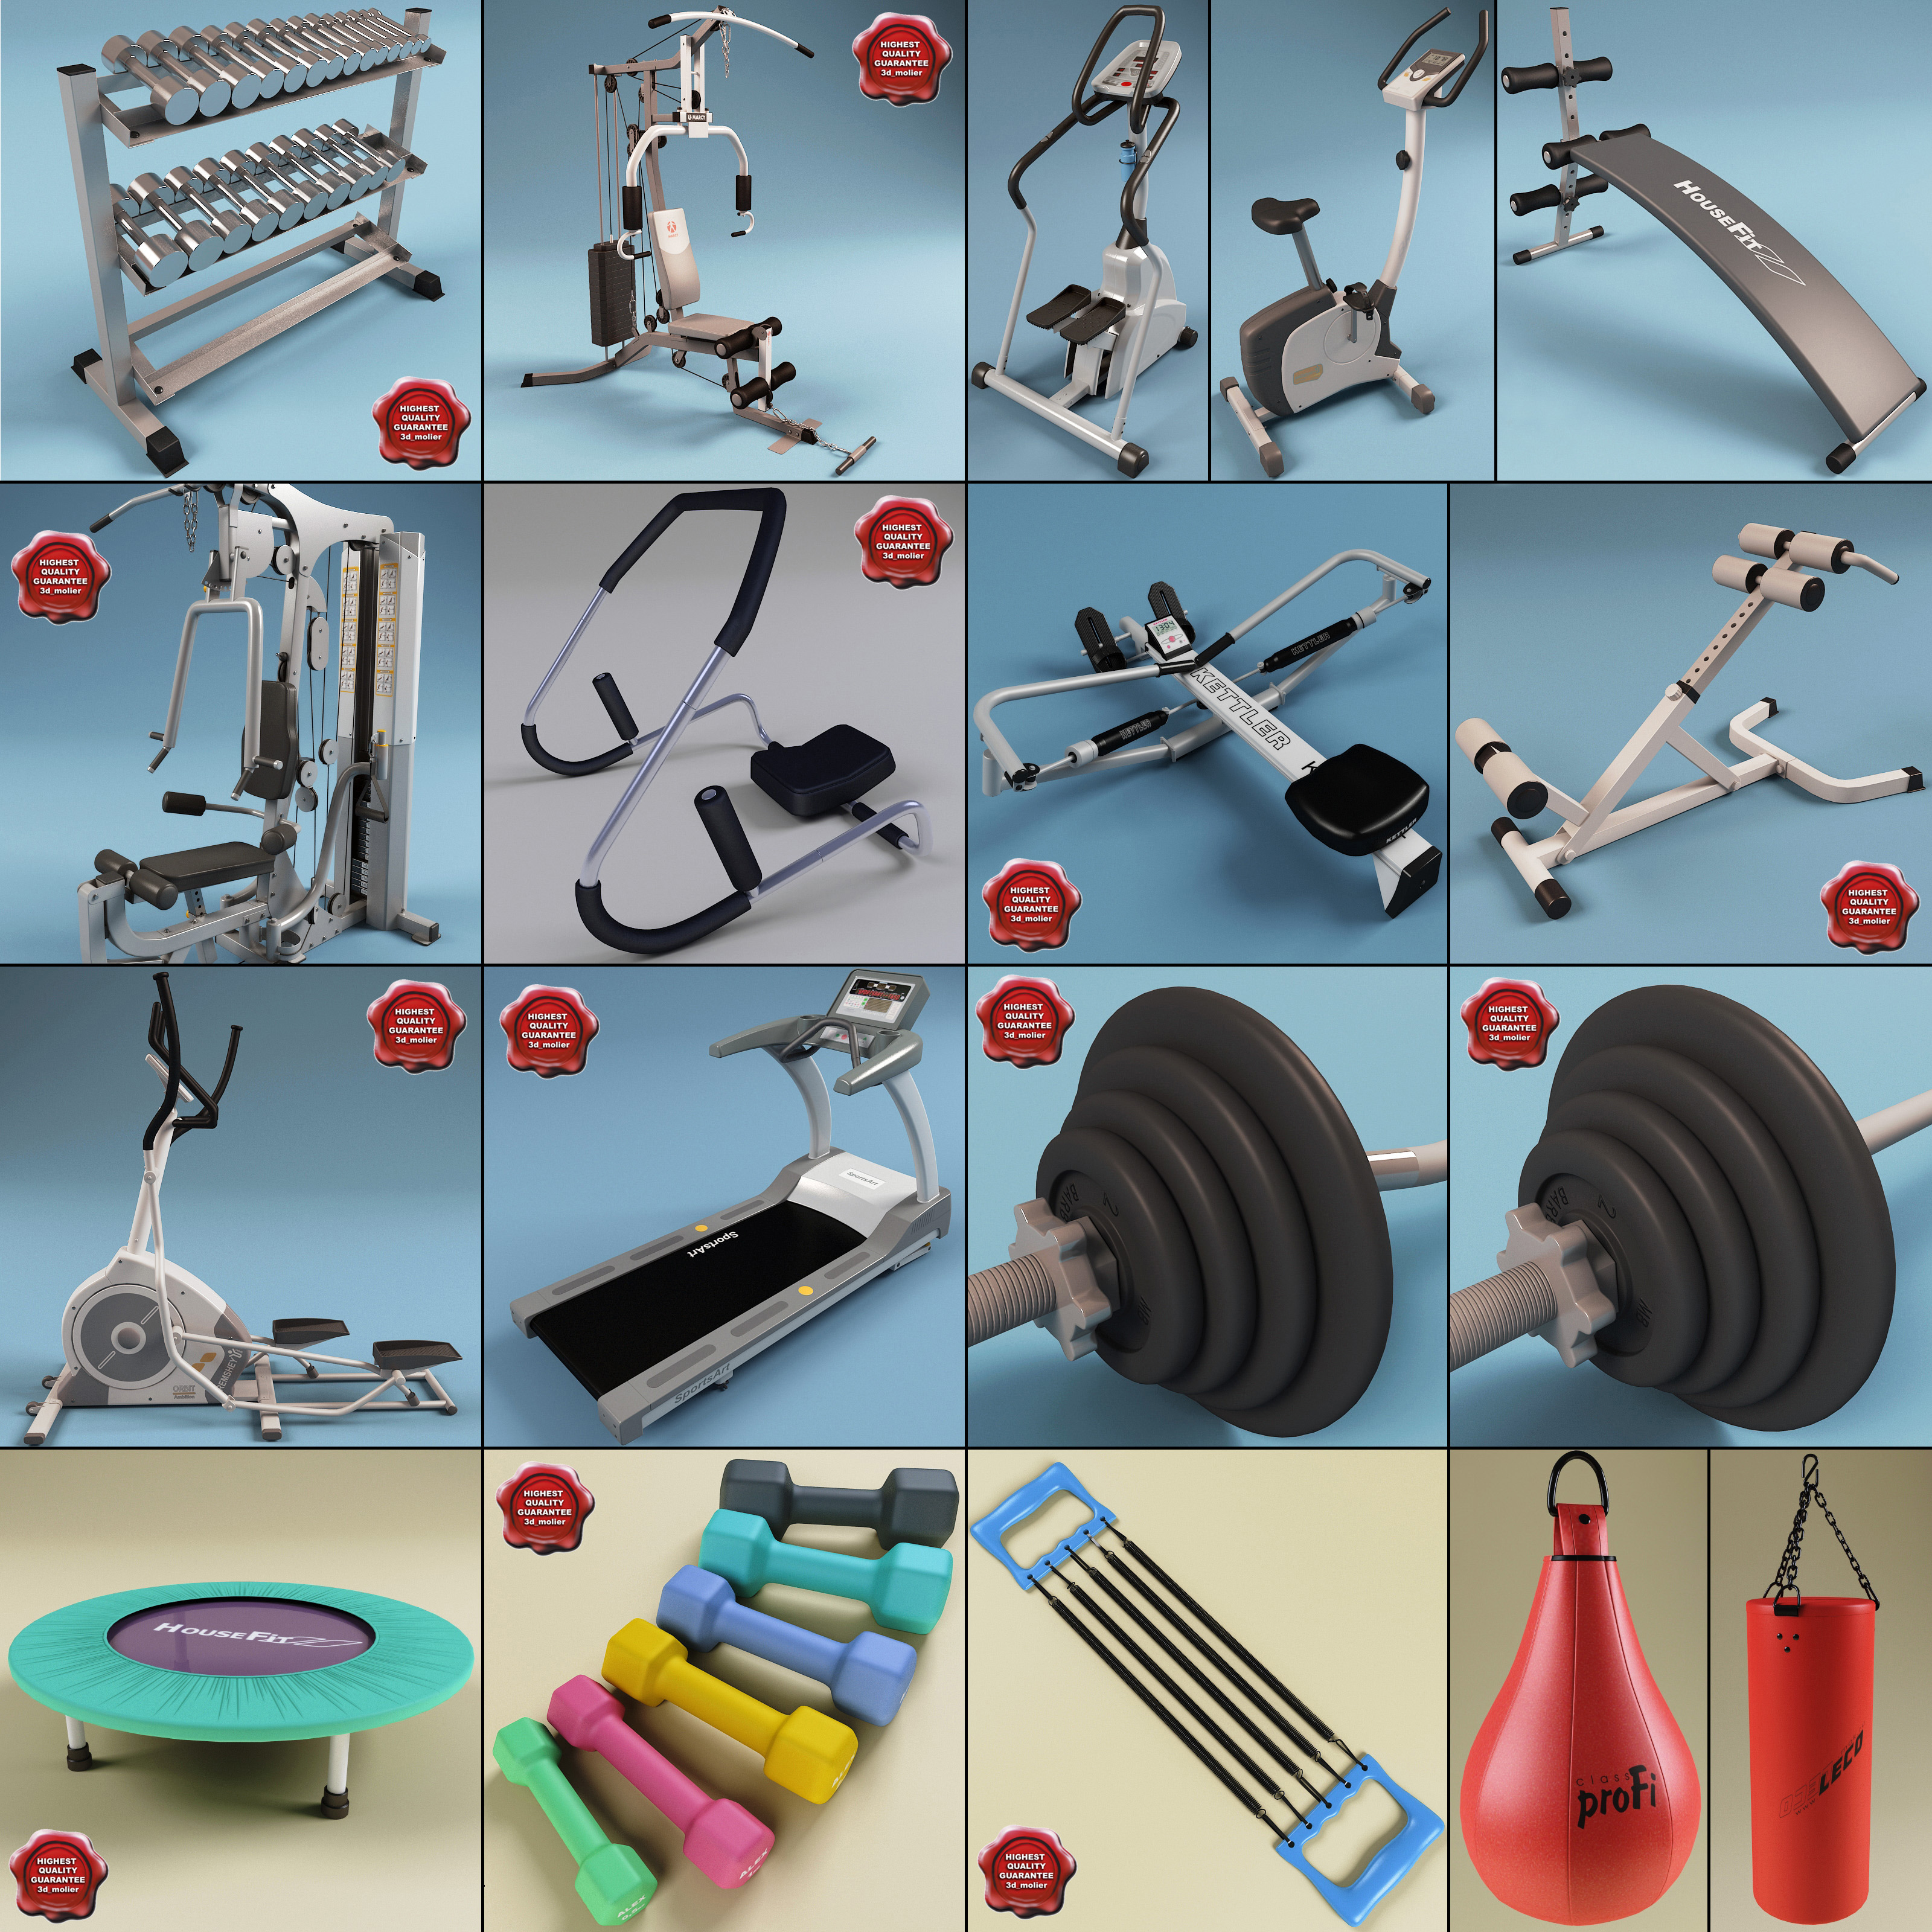 Gym_Equipment_Collection_V3_00.jpg